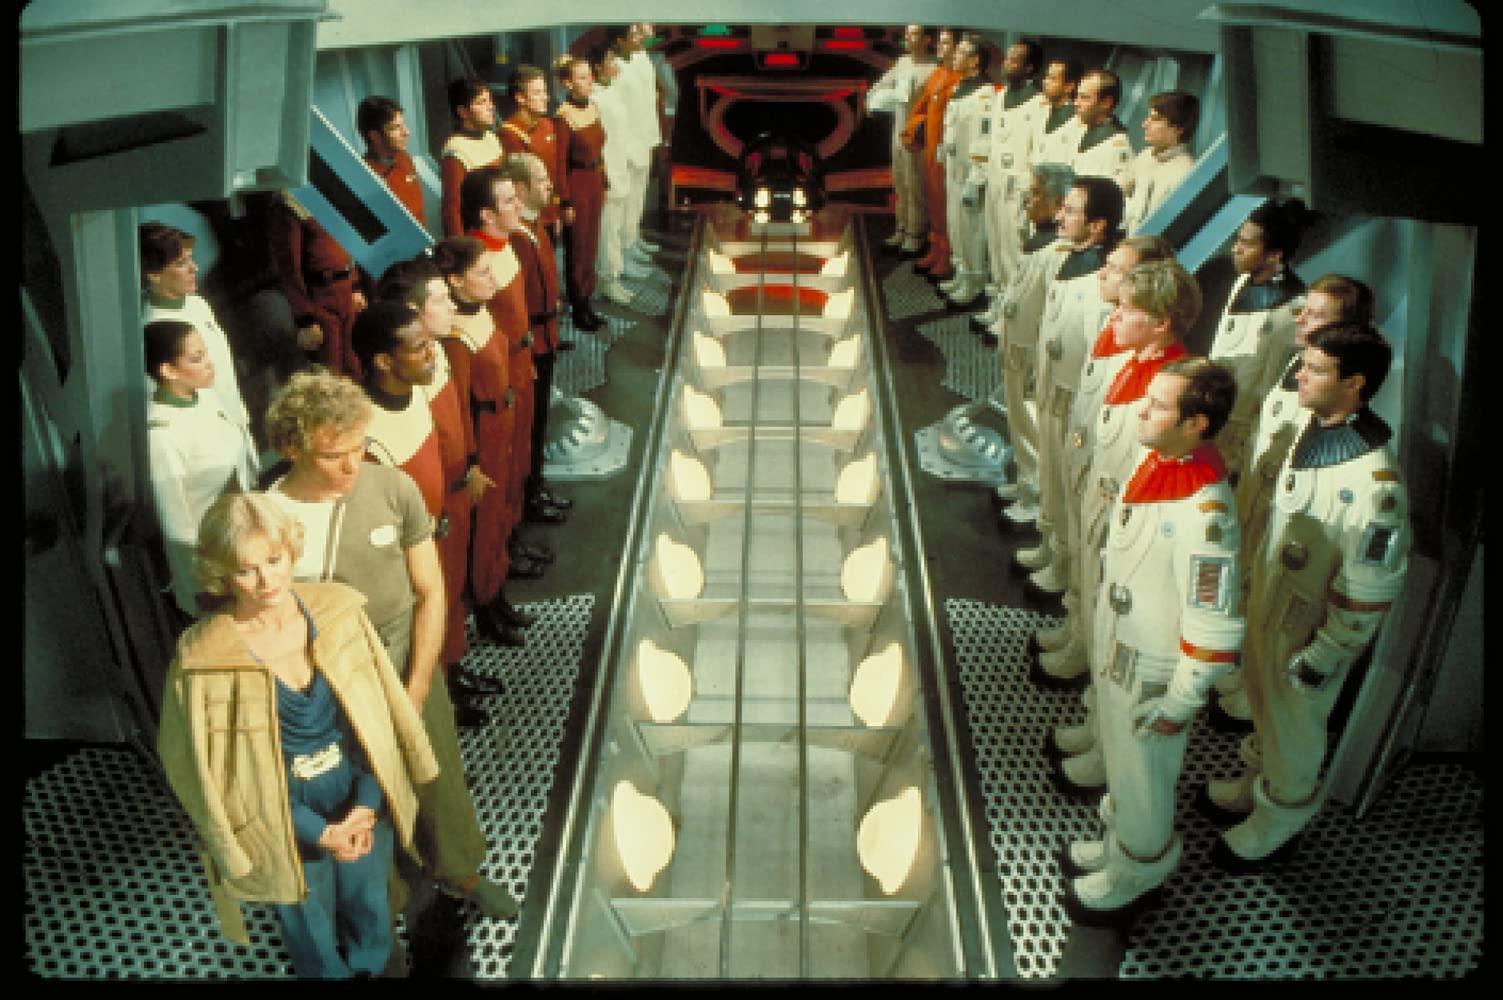 Bibi Besch Merritt Butrick Kevin Rodney Sullivan and Philip Weyland in Star Trek II The Wrath of Khan 1982